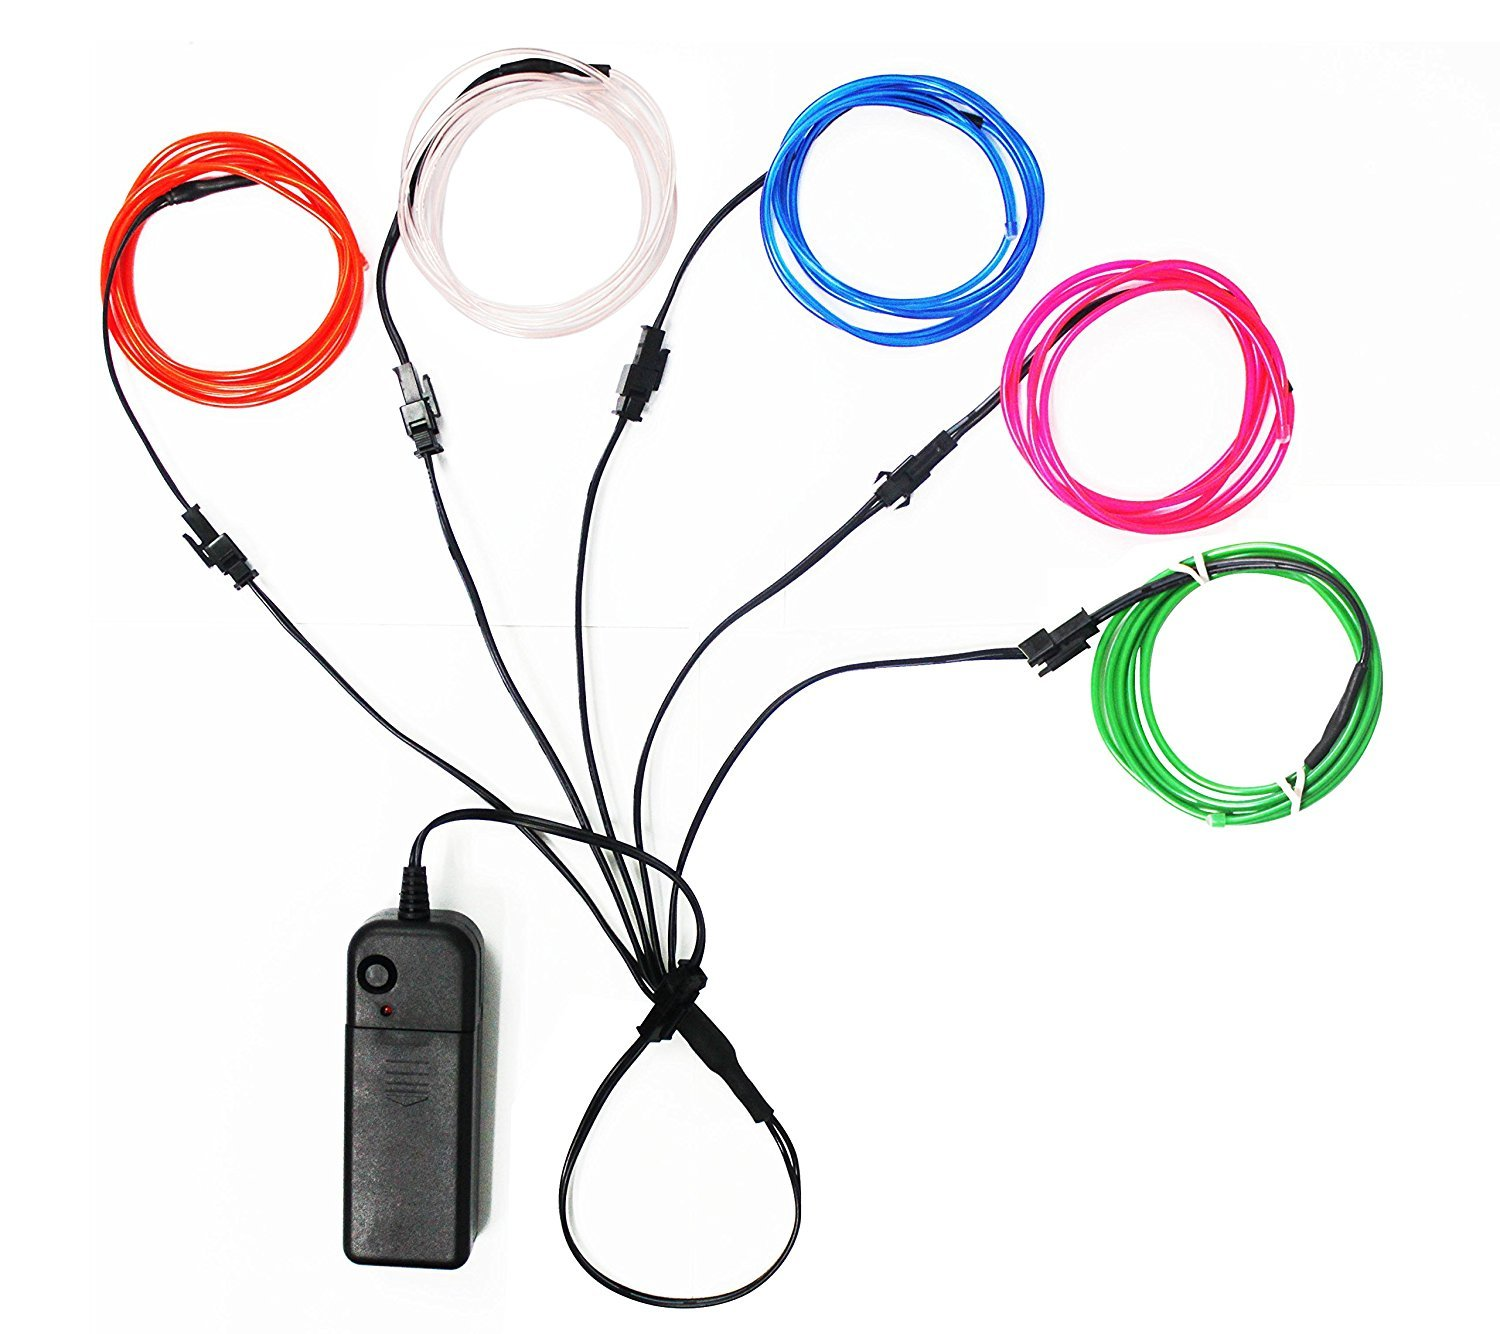 Ourbest El Wire Lights Neon Light Electroluminescent Wire Battery Operated 3ft for Halloween Christmas Party Decoration Blue White Red Green Pink(5 x 1M)